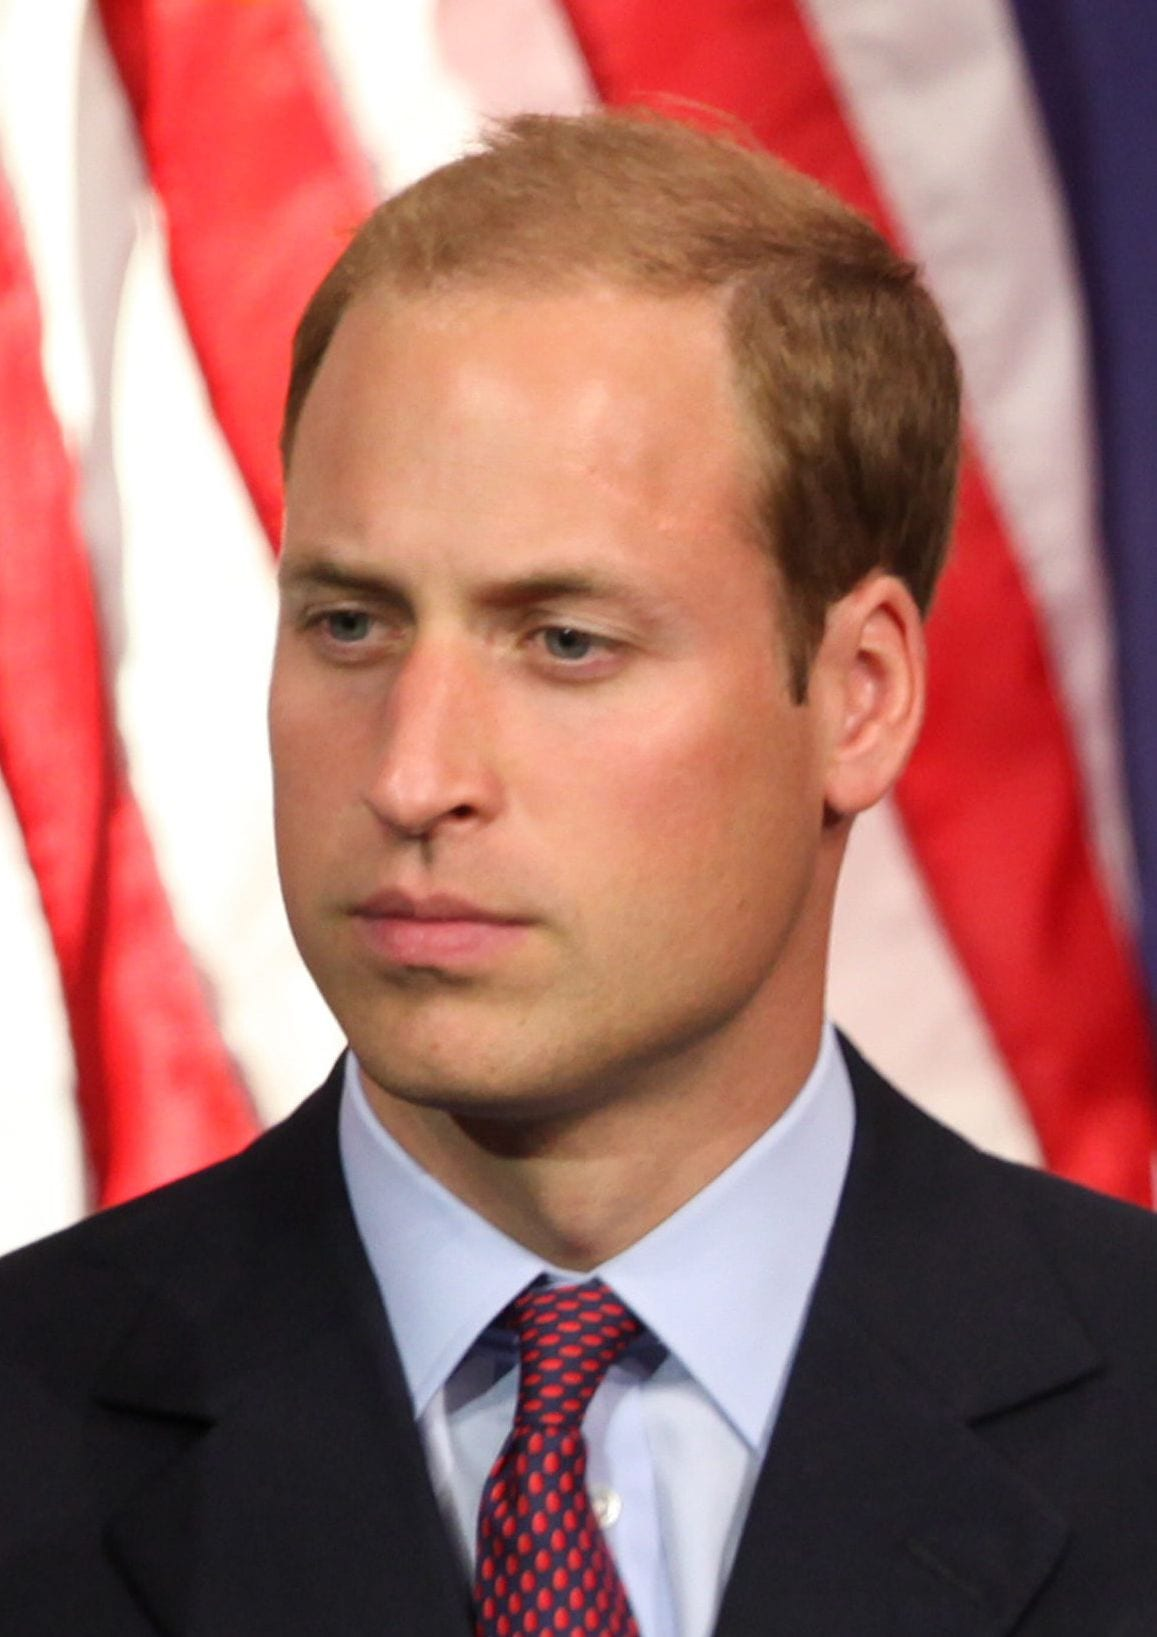 Prince William tightly-cropped hairdo